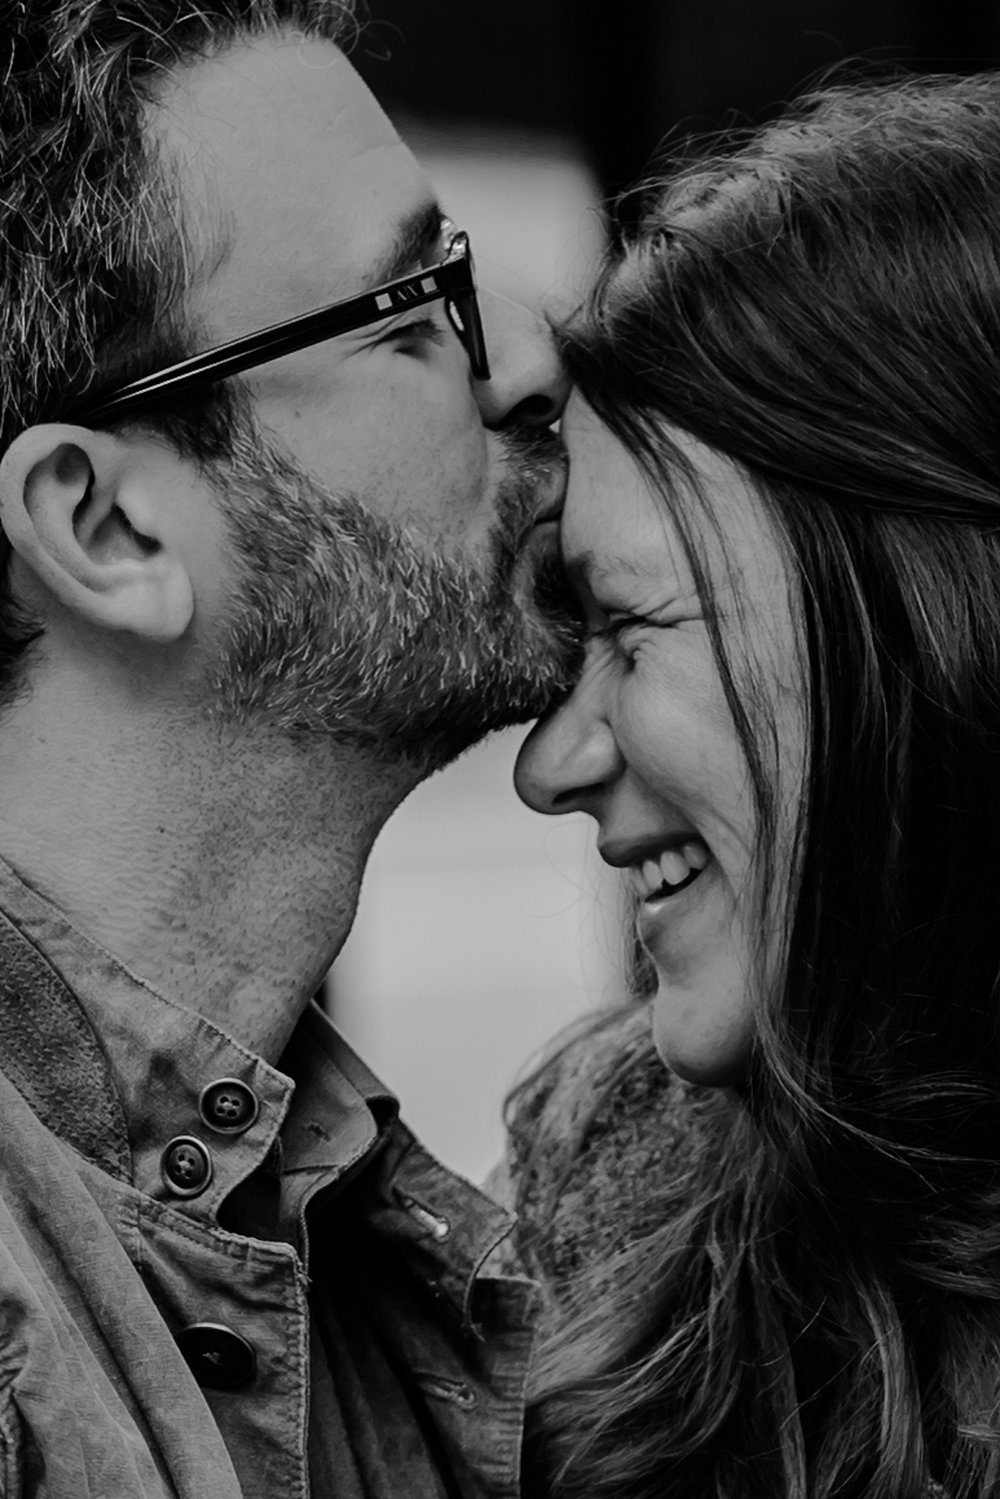 black and white close up portrait of expecting dad kissing mom's forehead while mom's laughs during maternity photo session in stuyvesant square nyc. photo by nyc family and newborn photographer krystil mcdowall